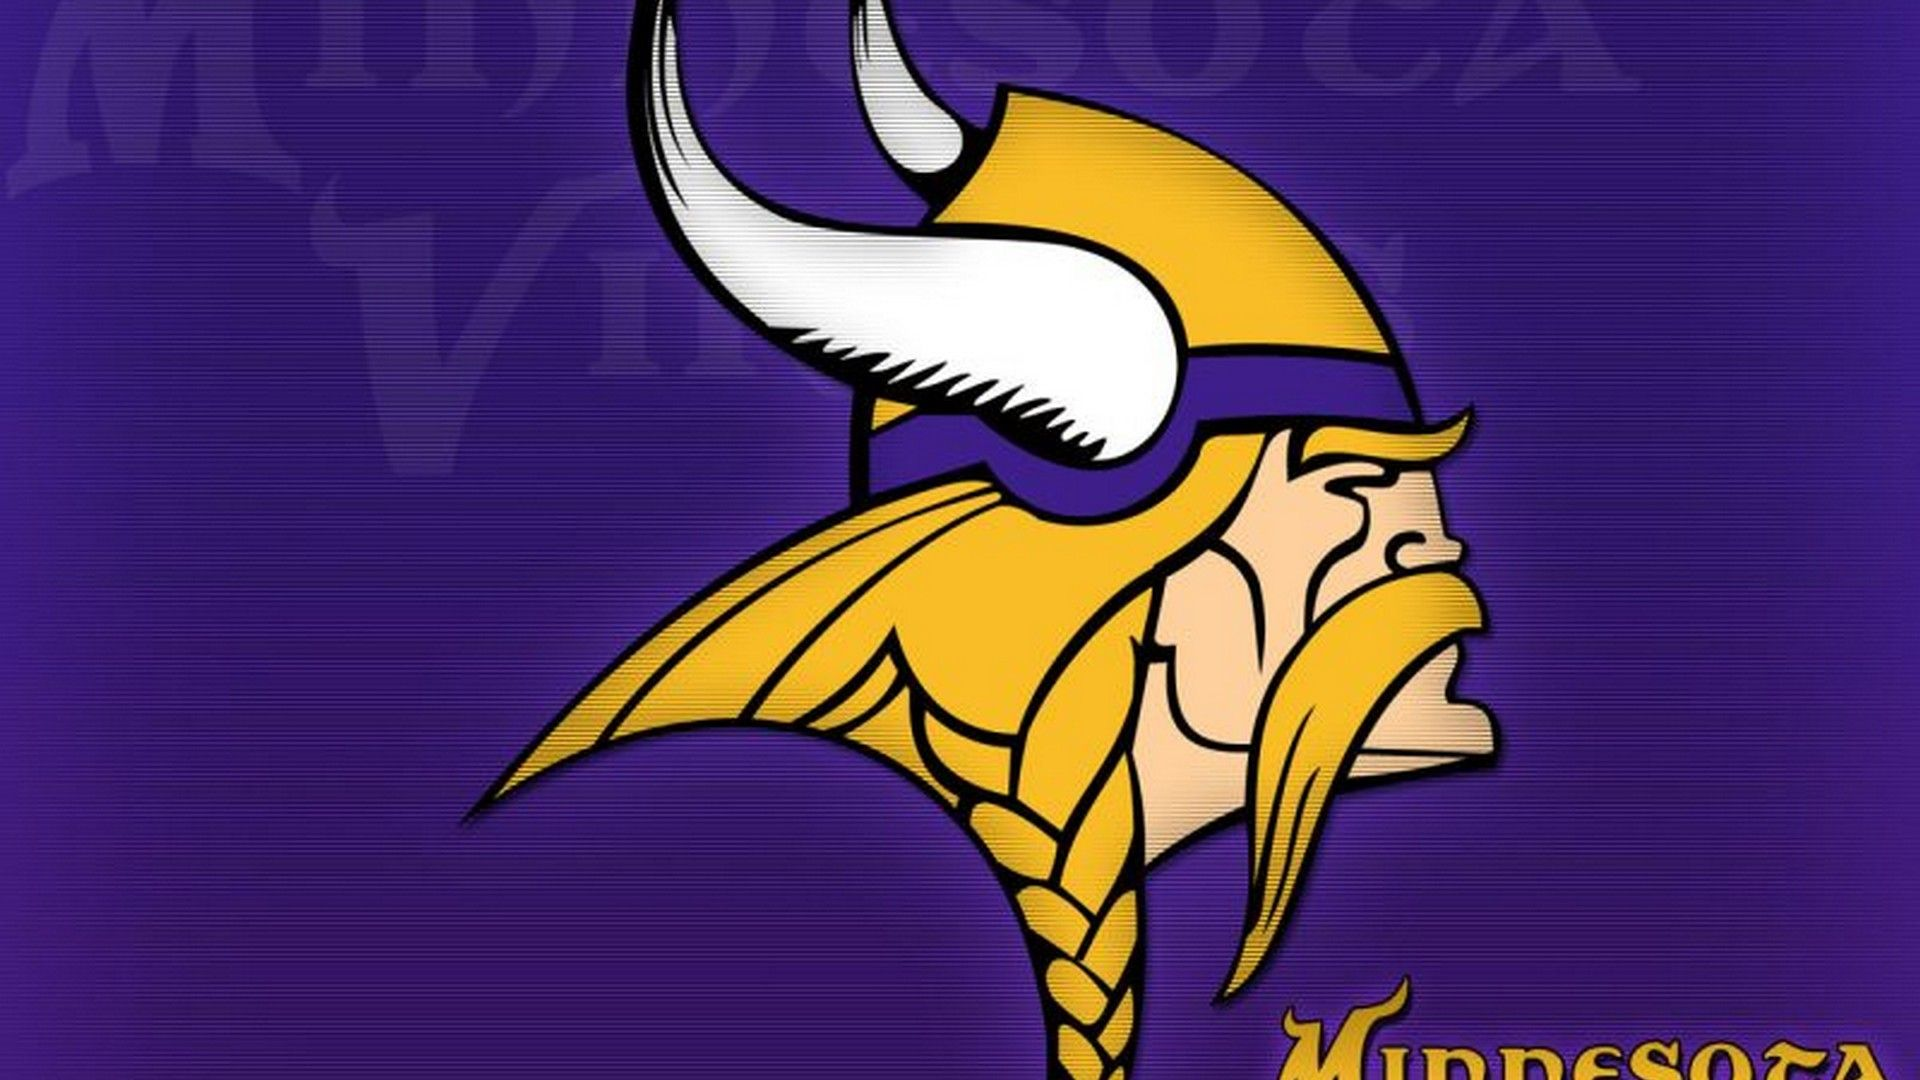 Minnesota Vikings HD Wallpapers (With images) Nfl